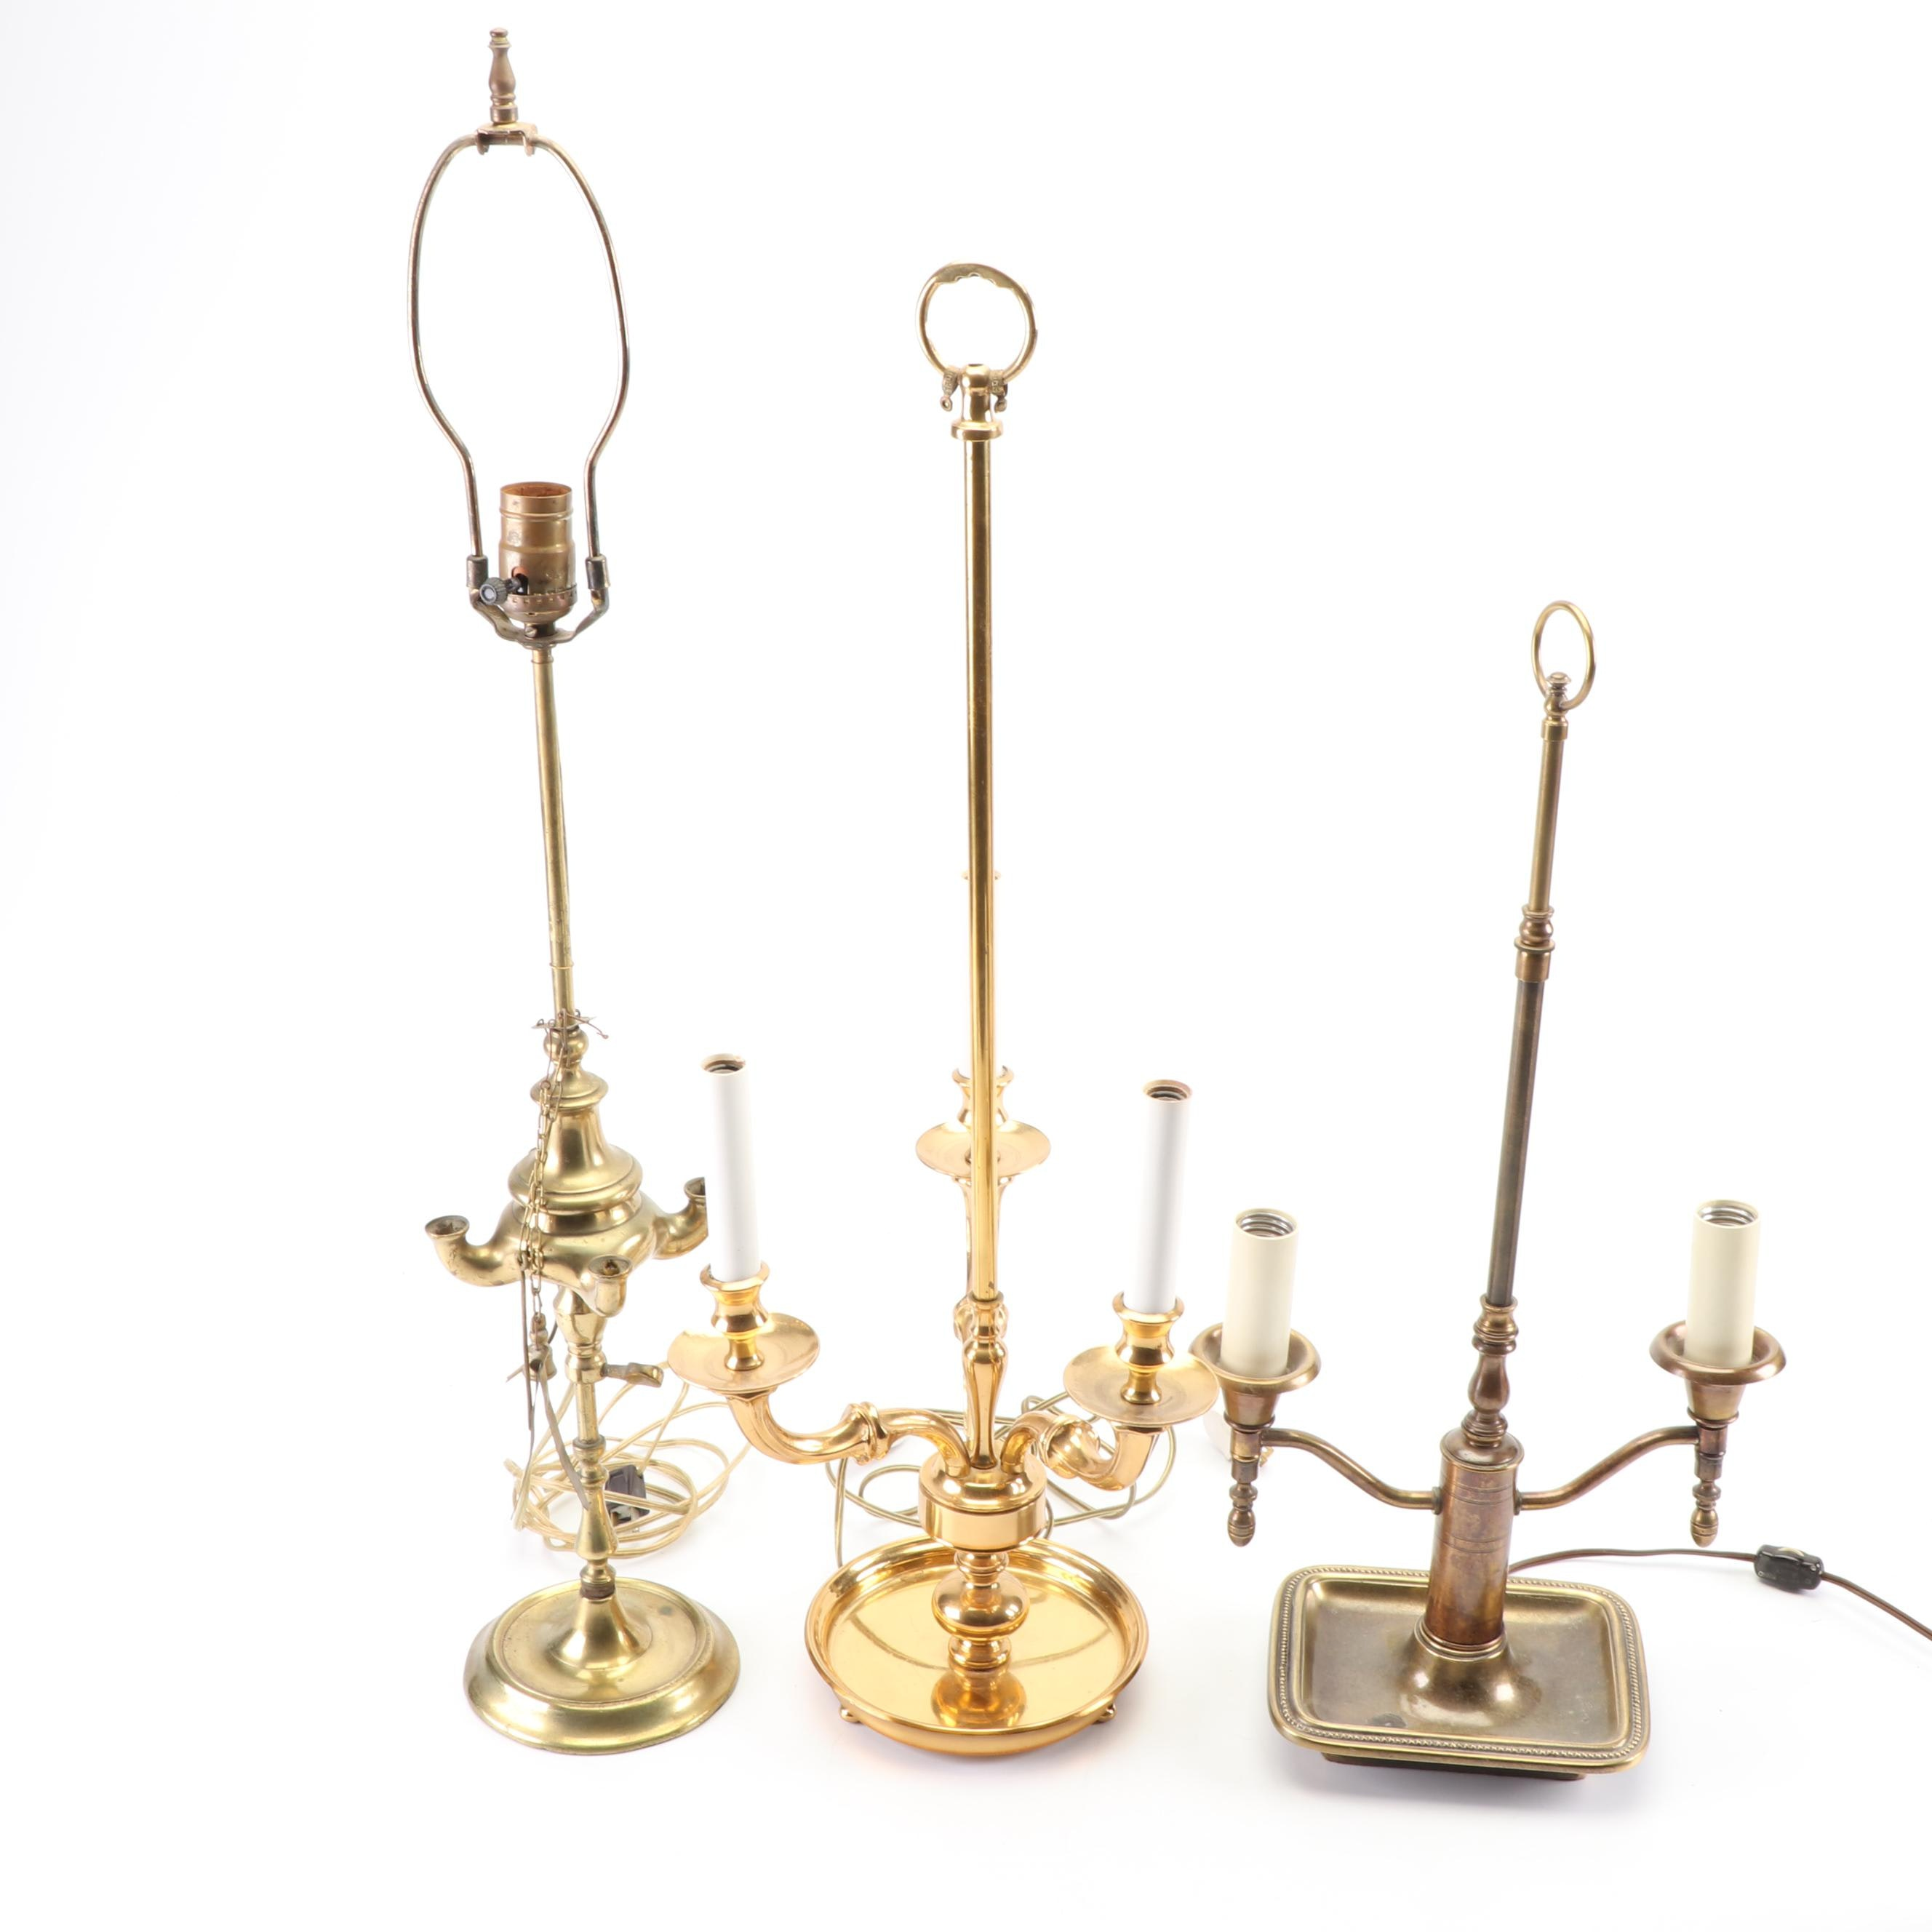 Brass Candelabra Table Lamps including Bouillotte Style